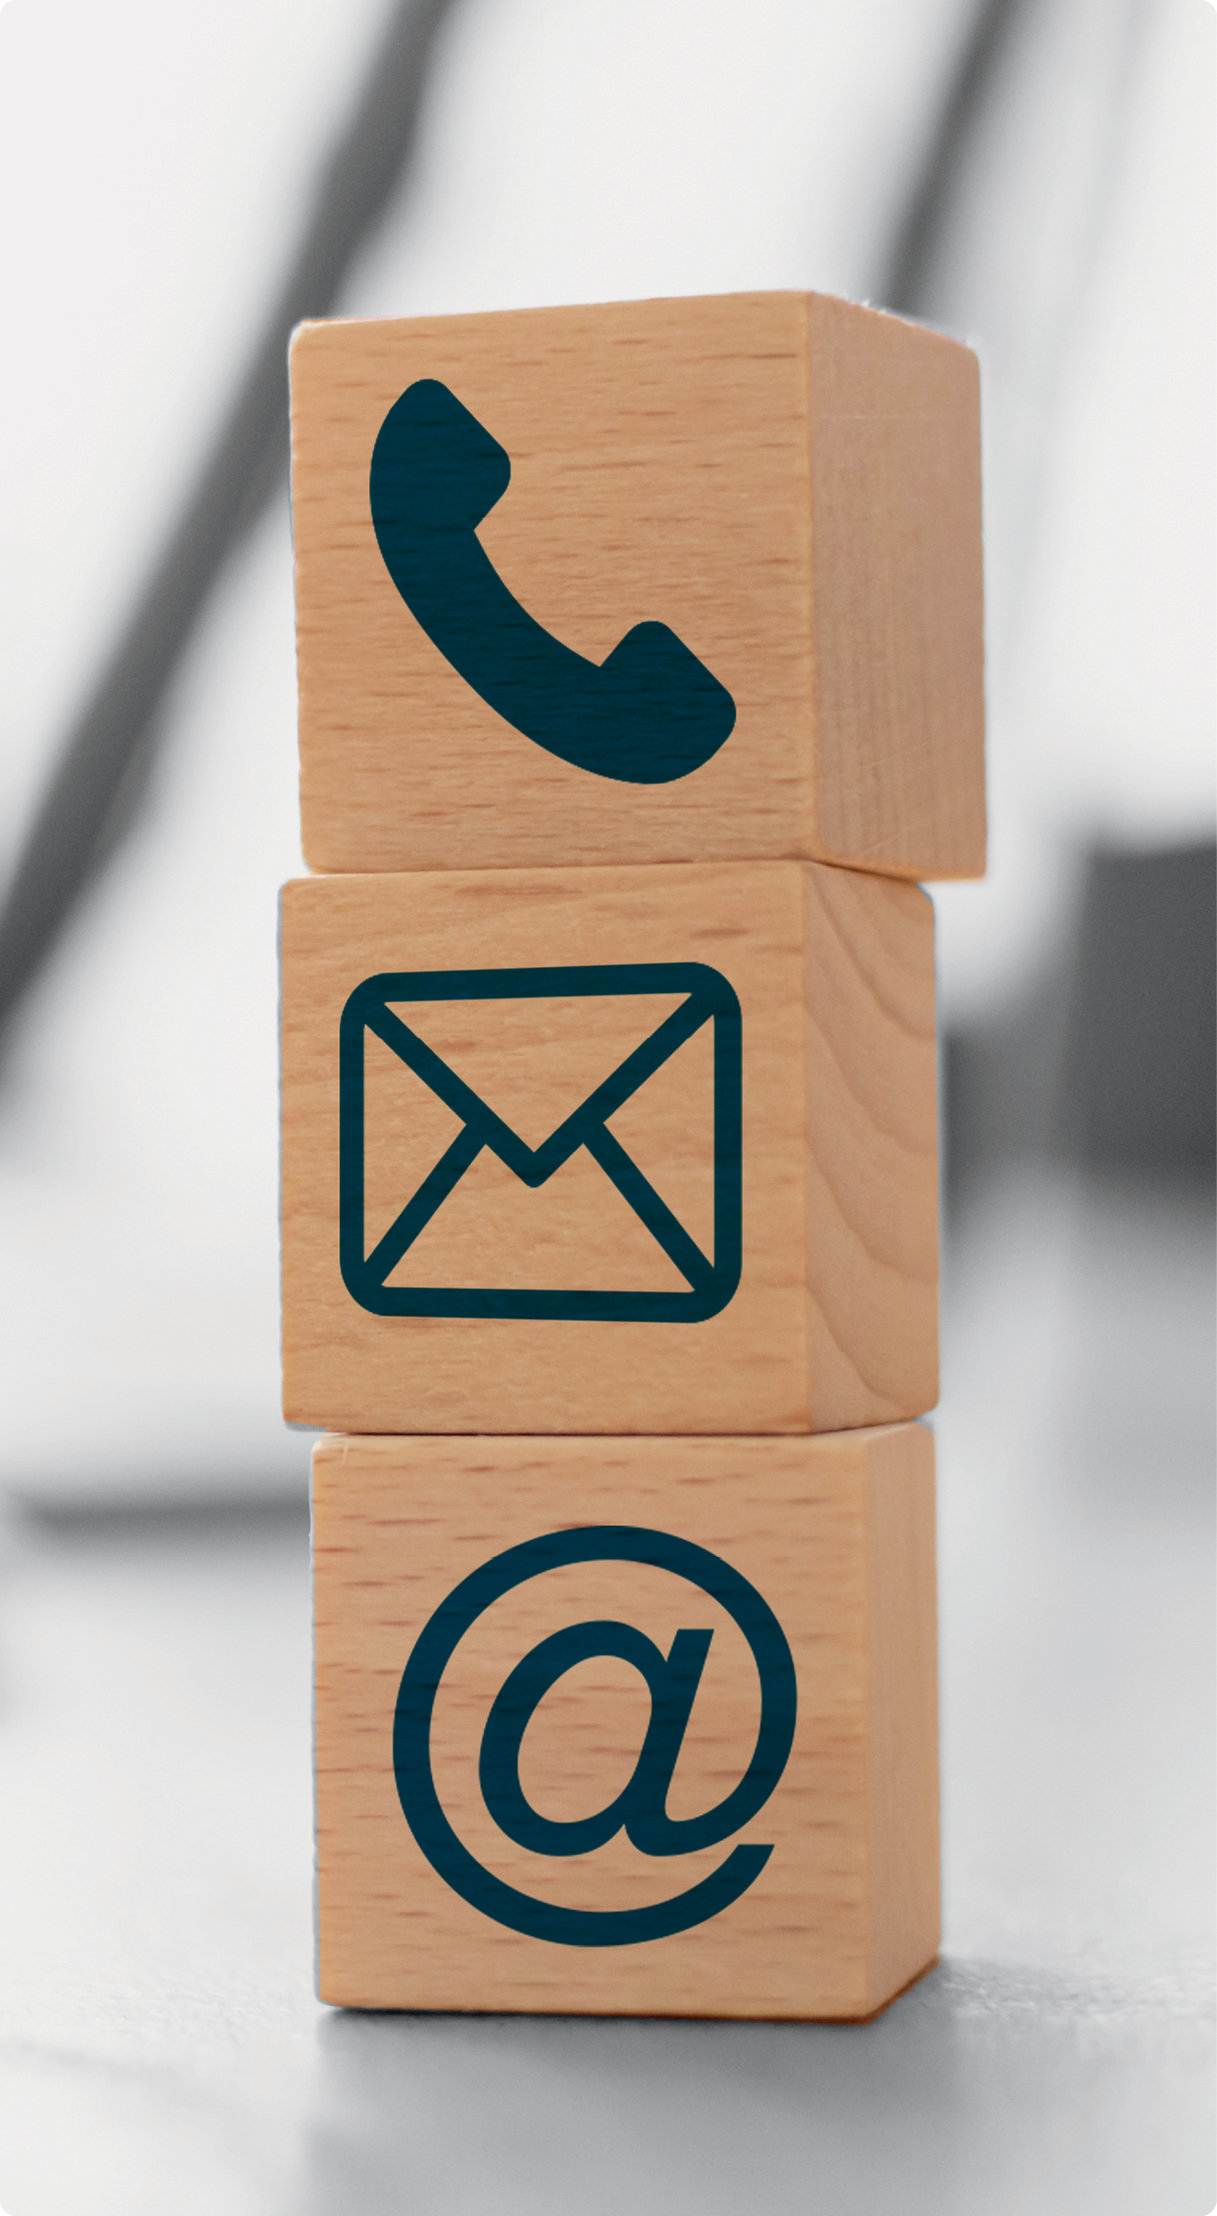 Three stacked wooden blocks with telephone, mail, and email icons inscribed on each